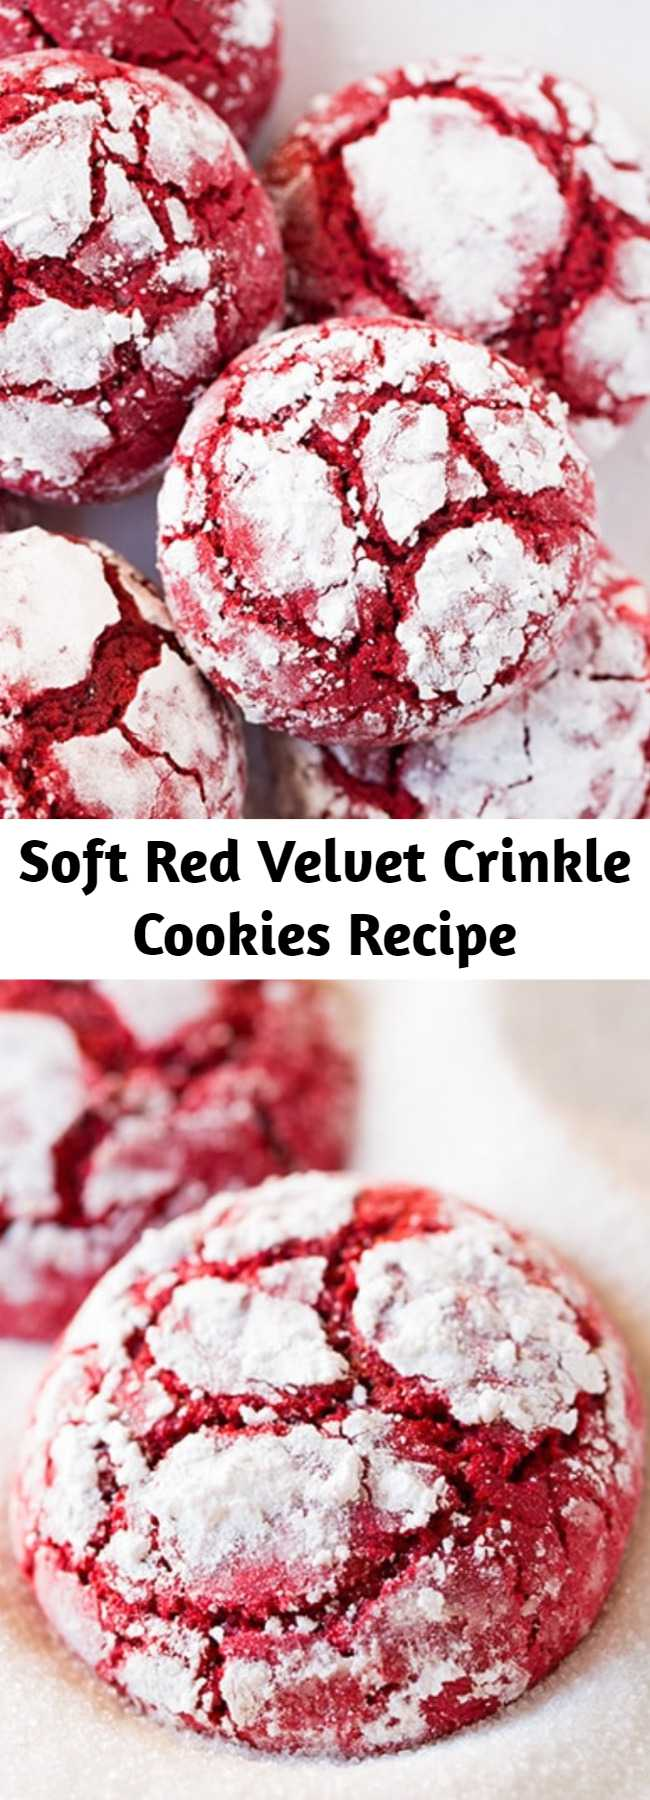 Soft Red Velvet Crinkle Cookies Recipe - Red Velvet Crinkle Cookies are a new perfect Christmas cookie! They're deliciously soft and have the classic flavors and stunning color of a red velvet cake but in individual cookie form. They're coated with sweet dusting of powdered sugar and once baked up end with pretty little crackles to impress.